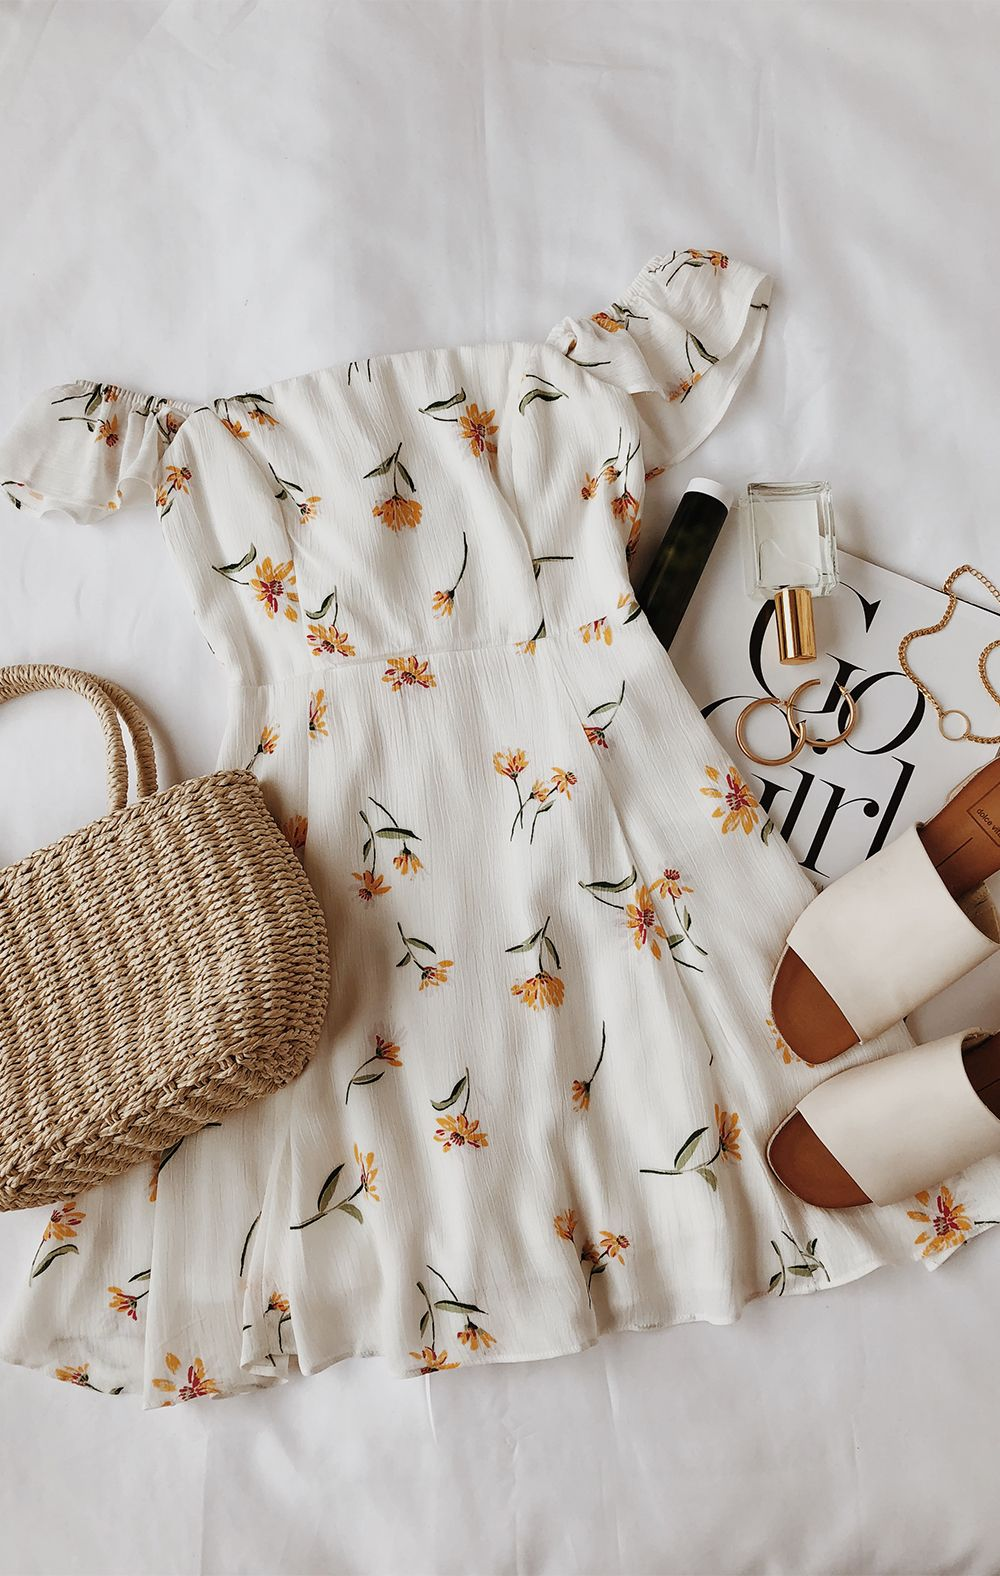 Trendy Coziest Cute Summer Dresses Ideas – Summer Outfit Inspirations Outfit Ideas for Women